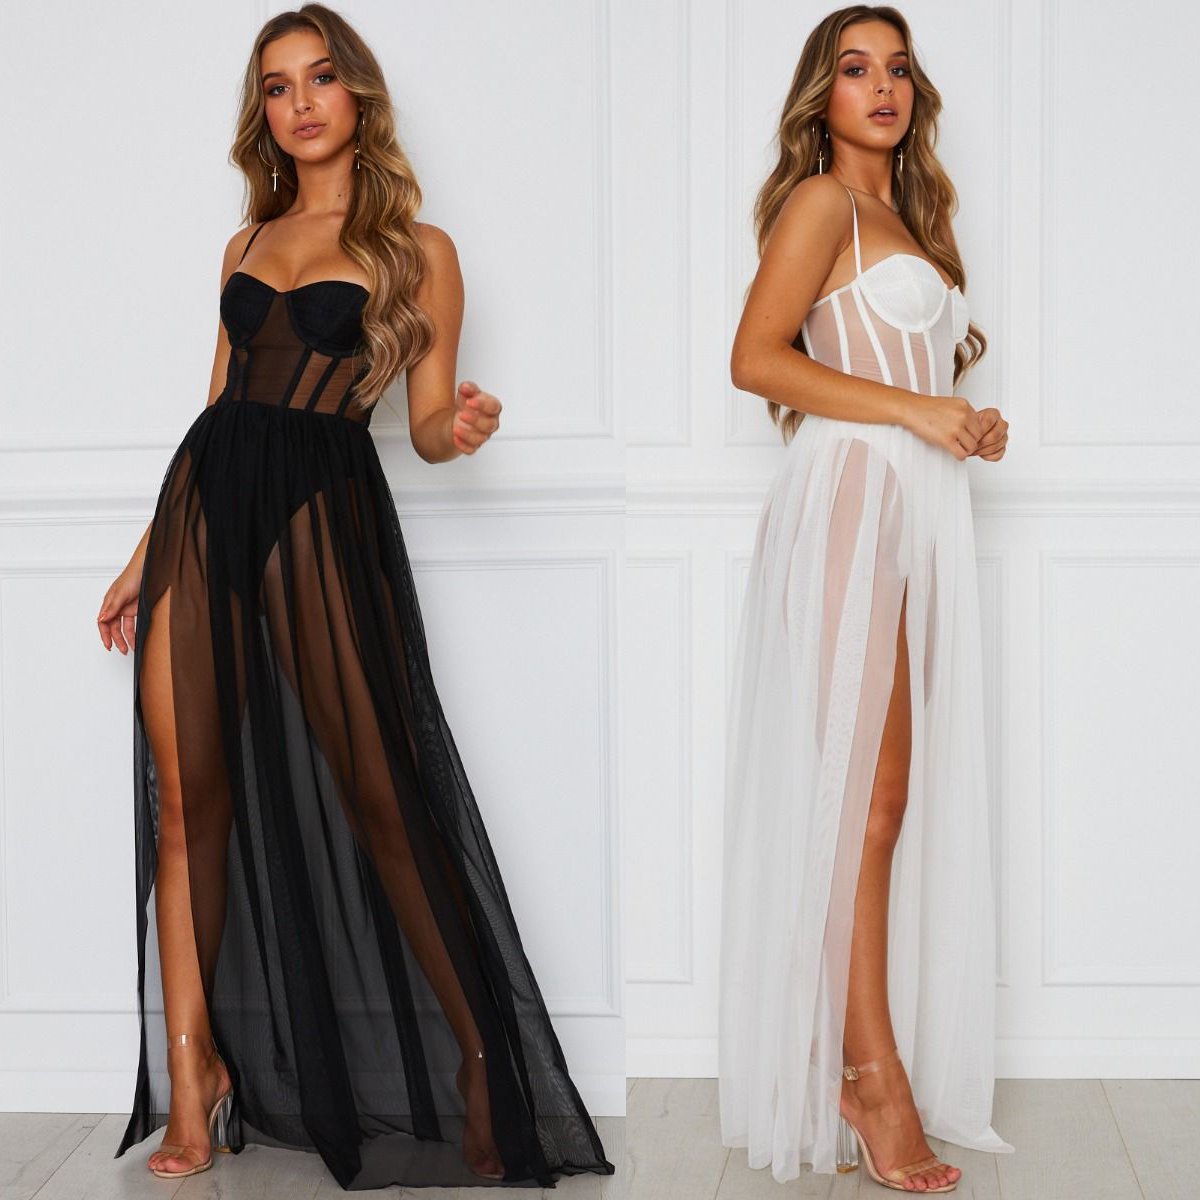 Push Up Padded Sexy Dress Women See-through Mesh Slip Dress High Split Leg High Waist Night Party Fashion Queen Maxi Dress 2019